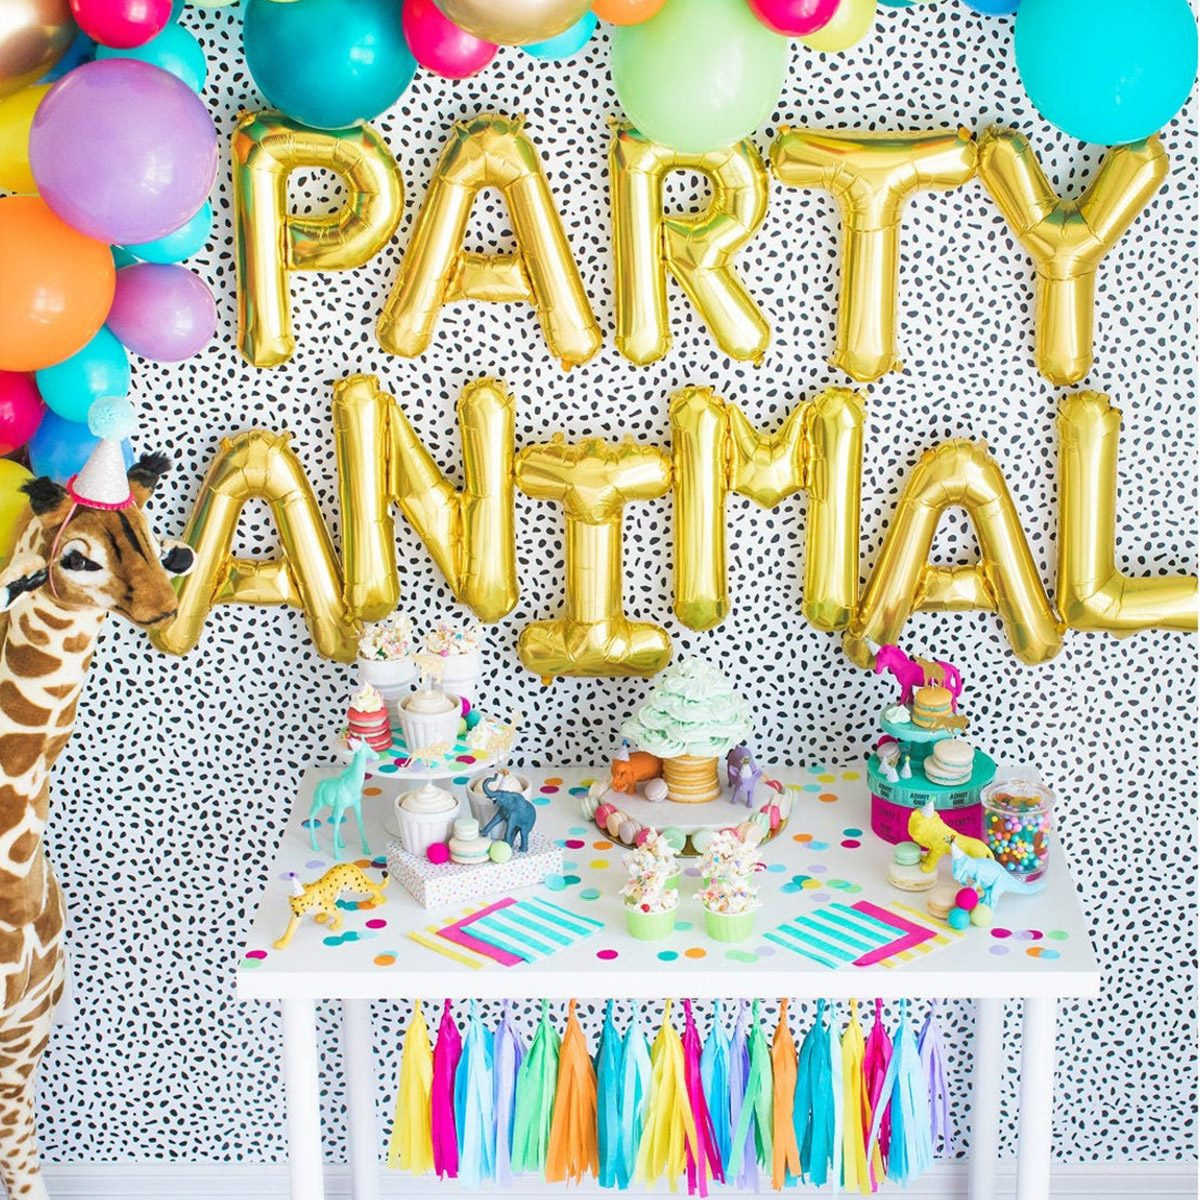 Party Animal Backdrop